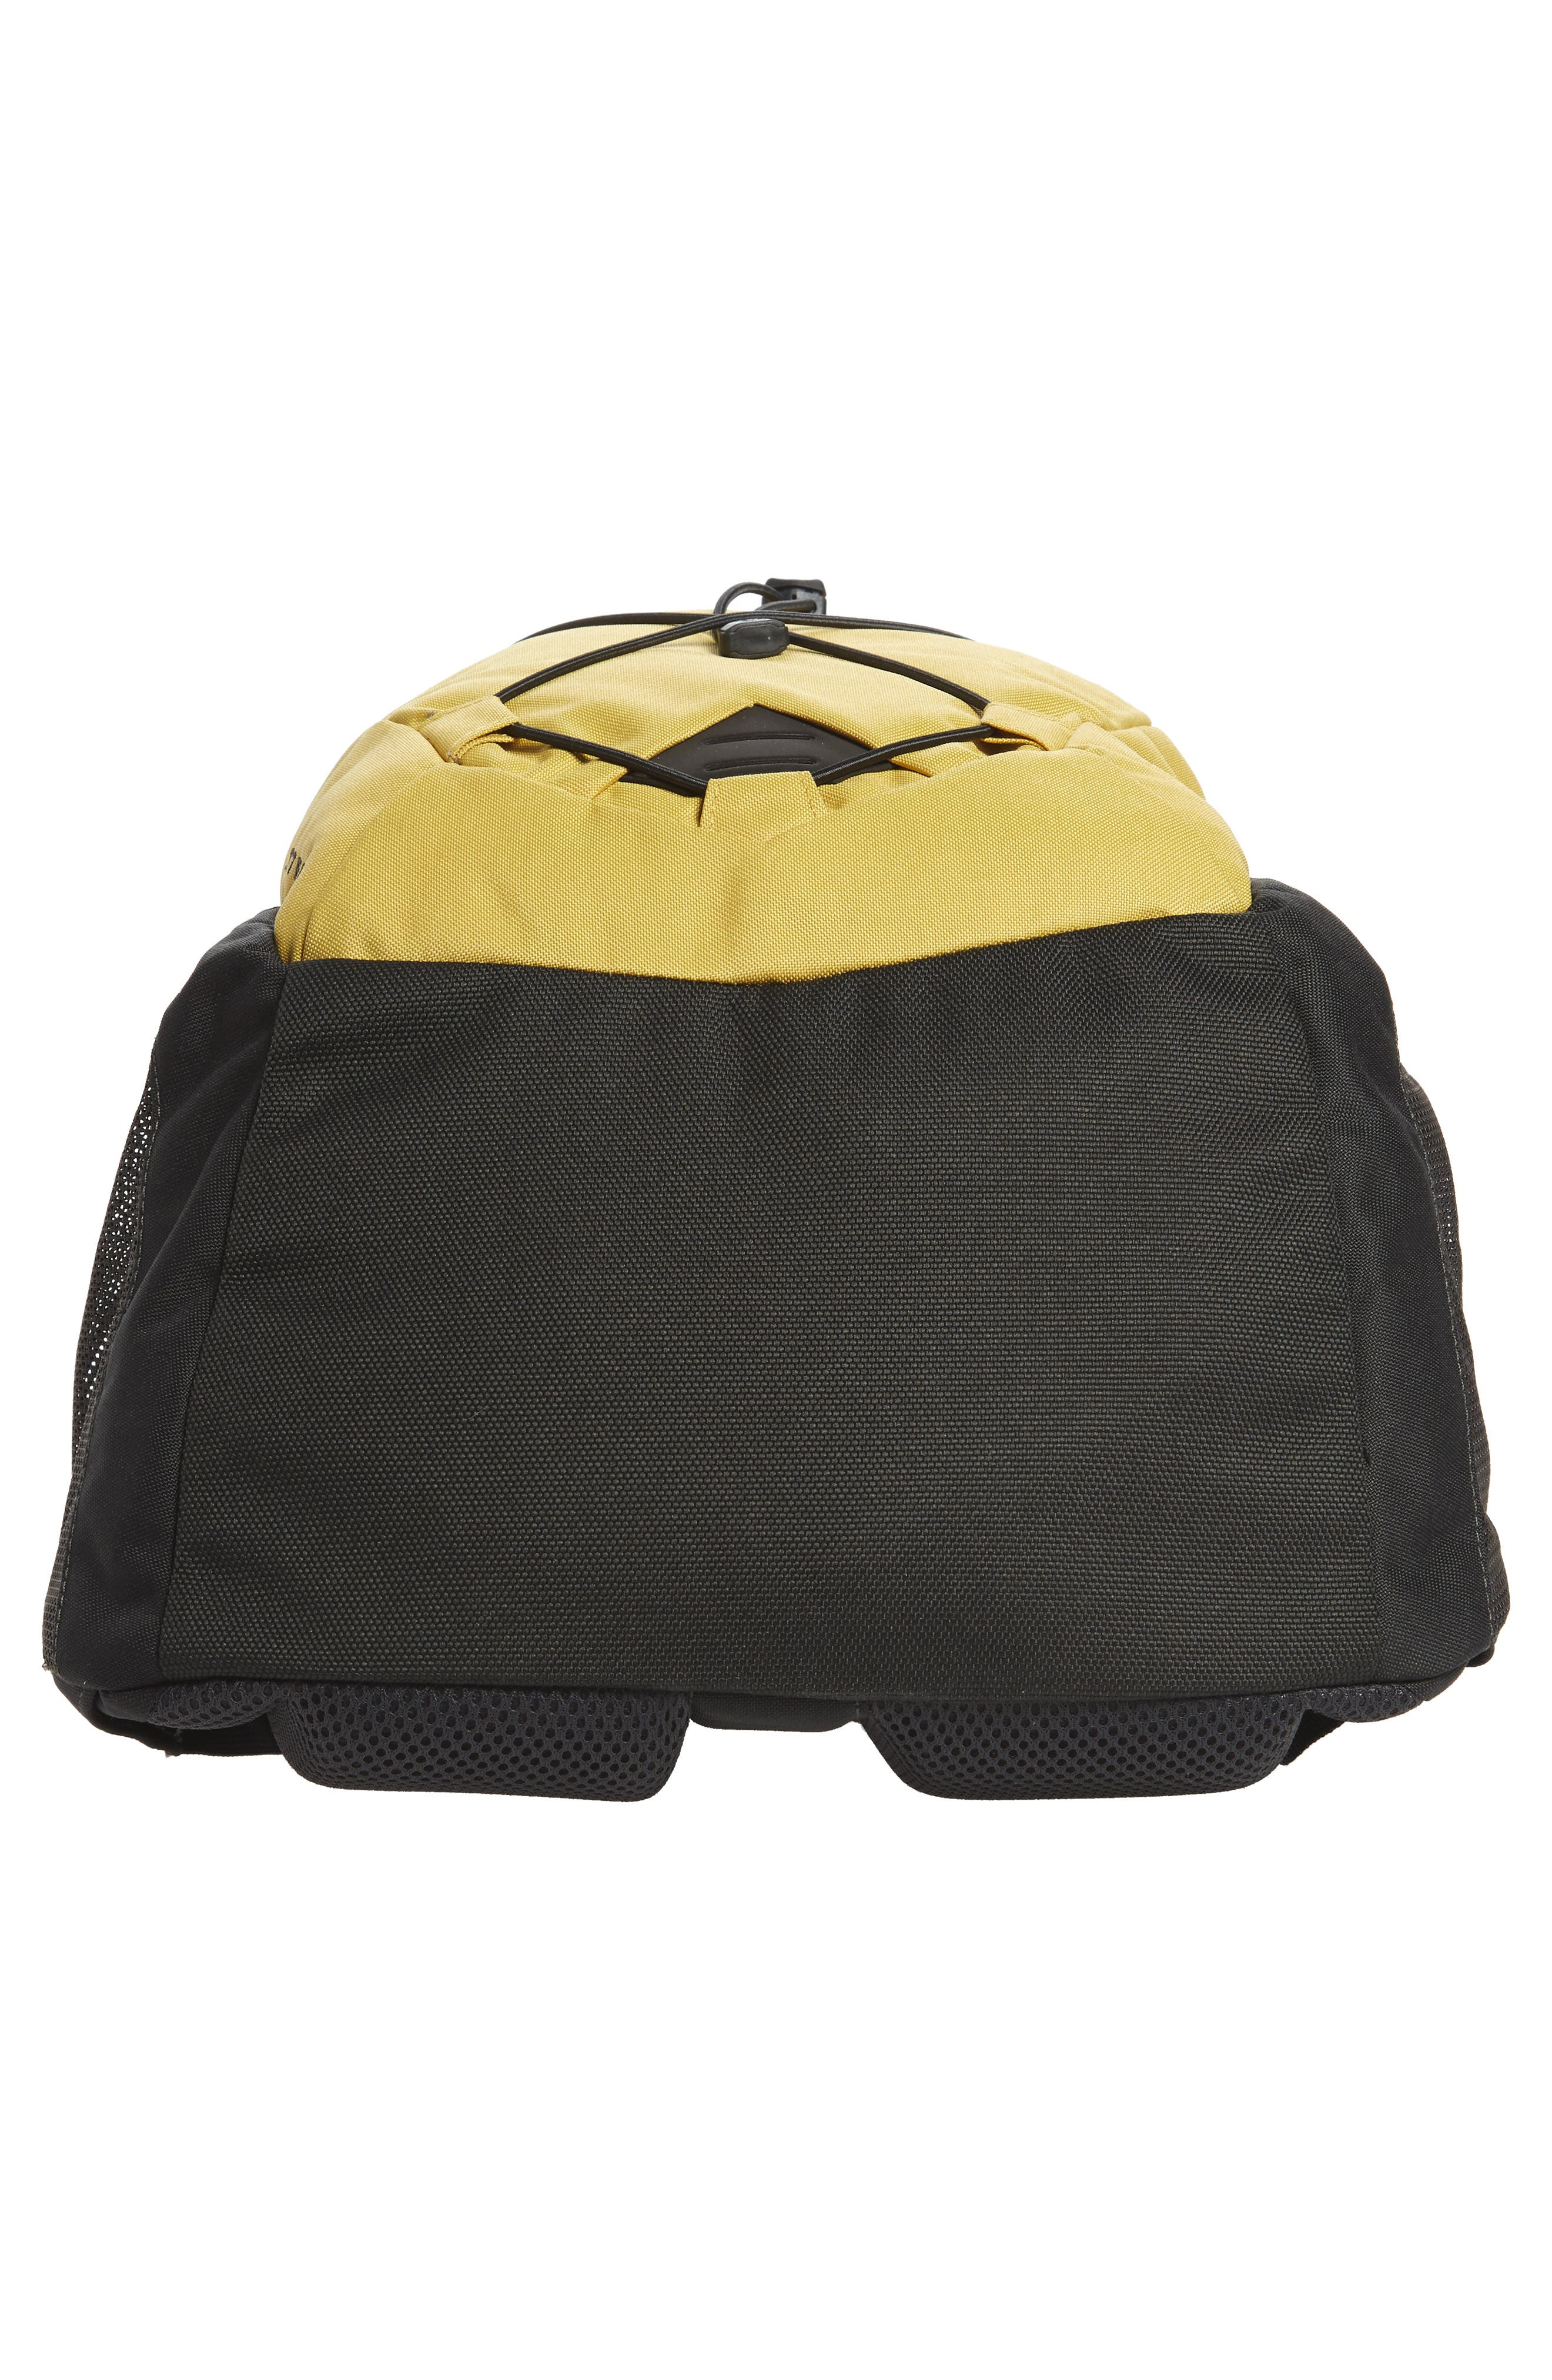 'Jester' Backpack,                             Alternate thumbnail 4, color,                             Olivenite Yellow/ Asphalt Grey